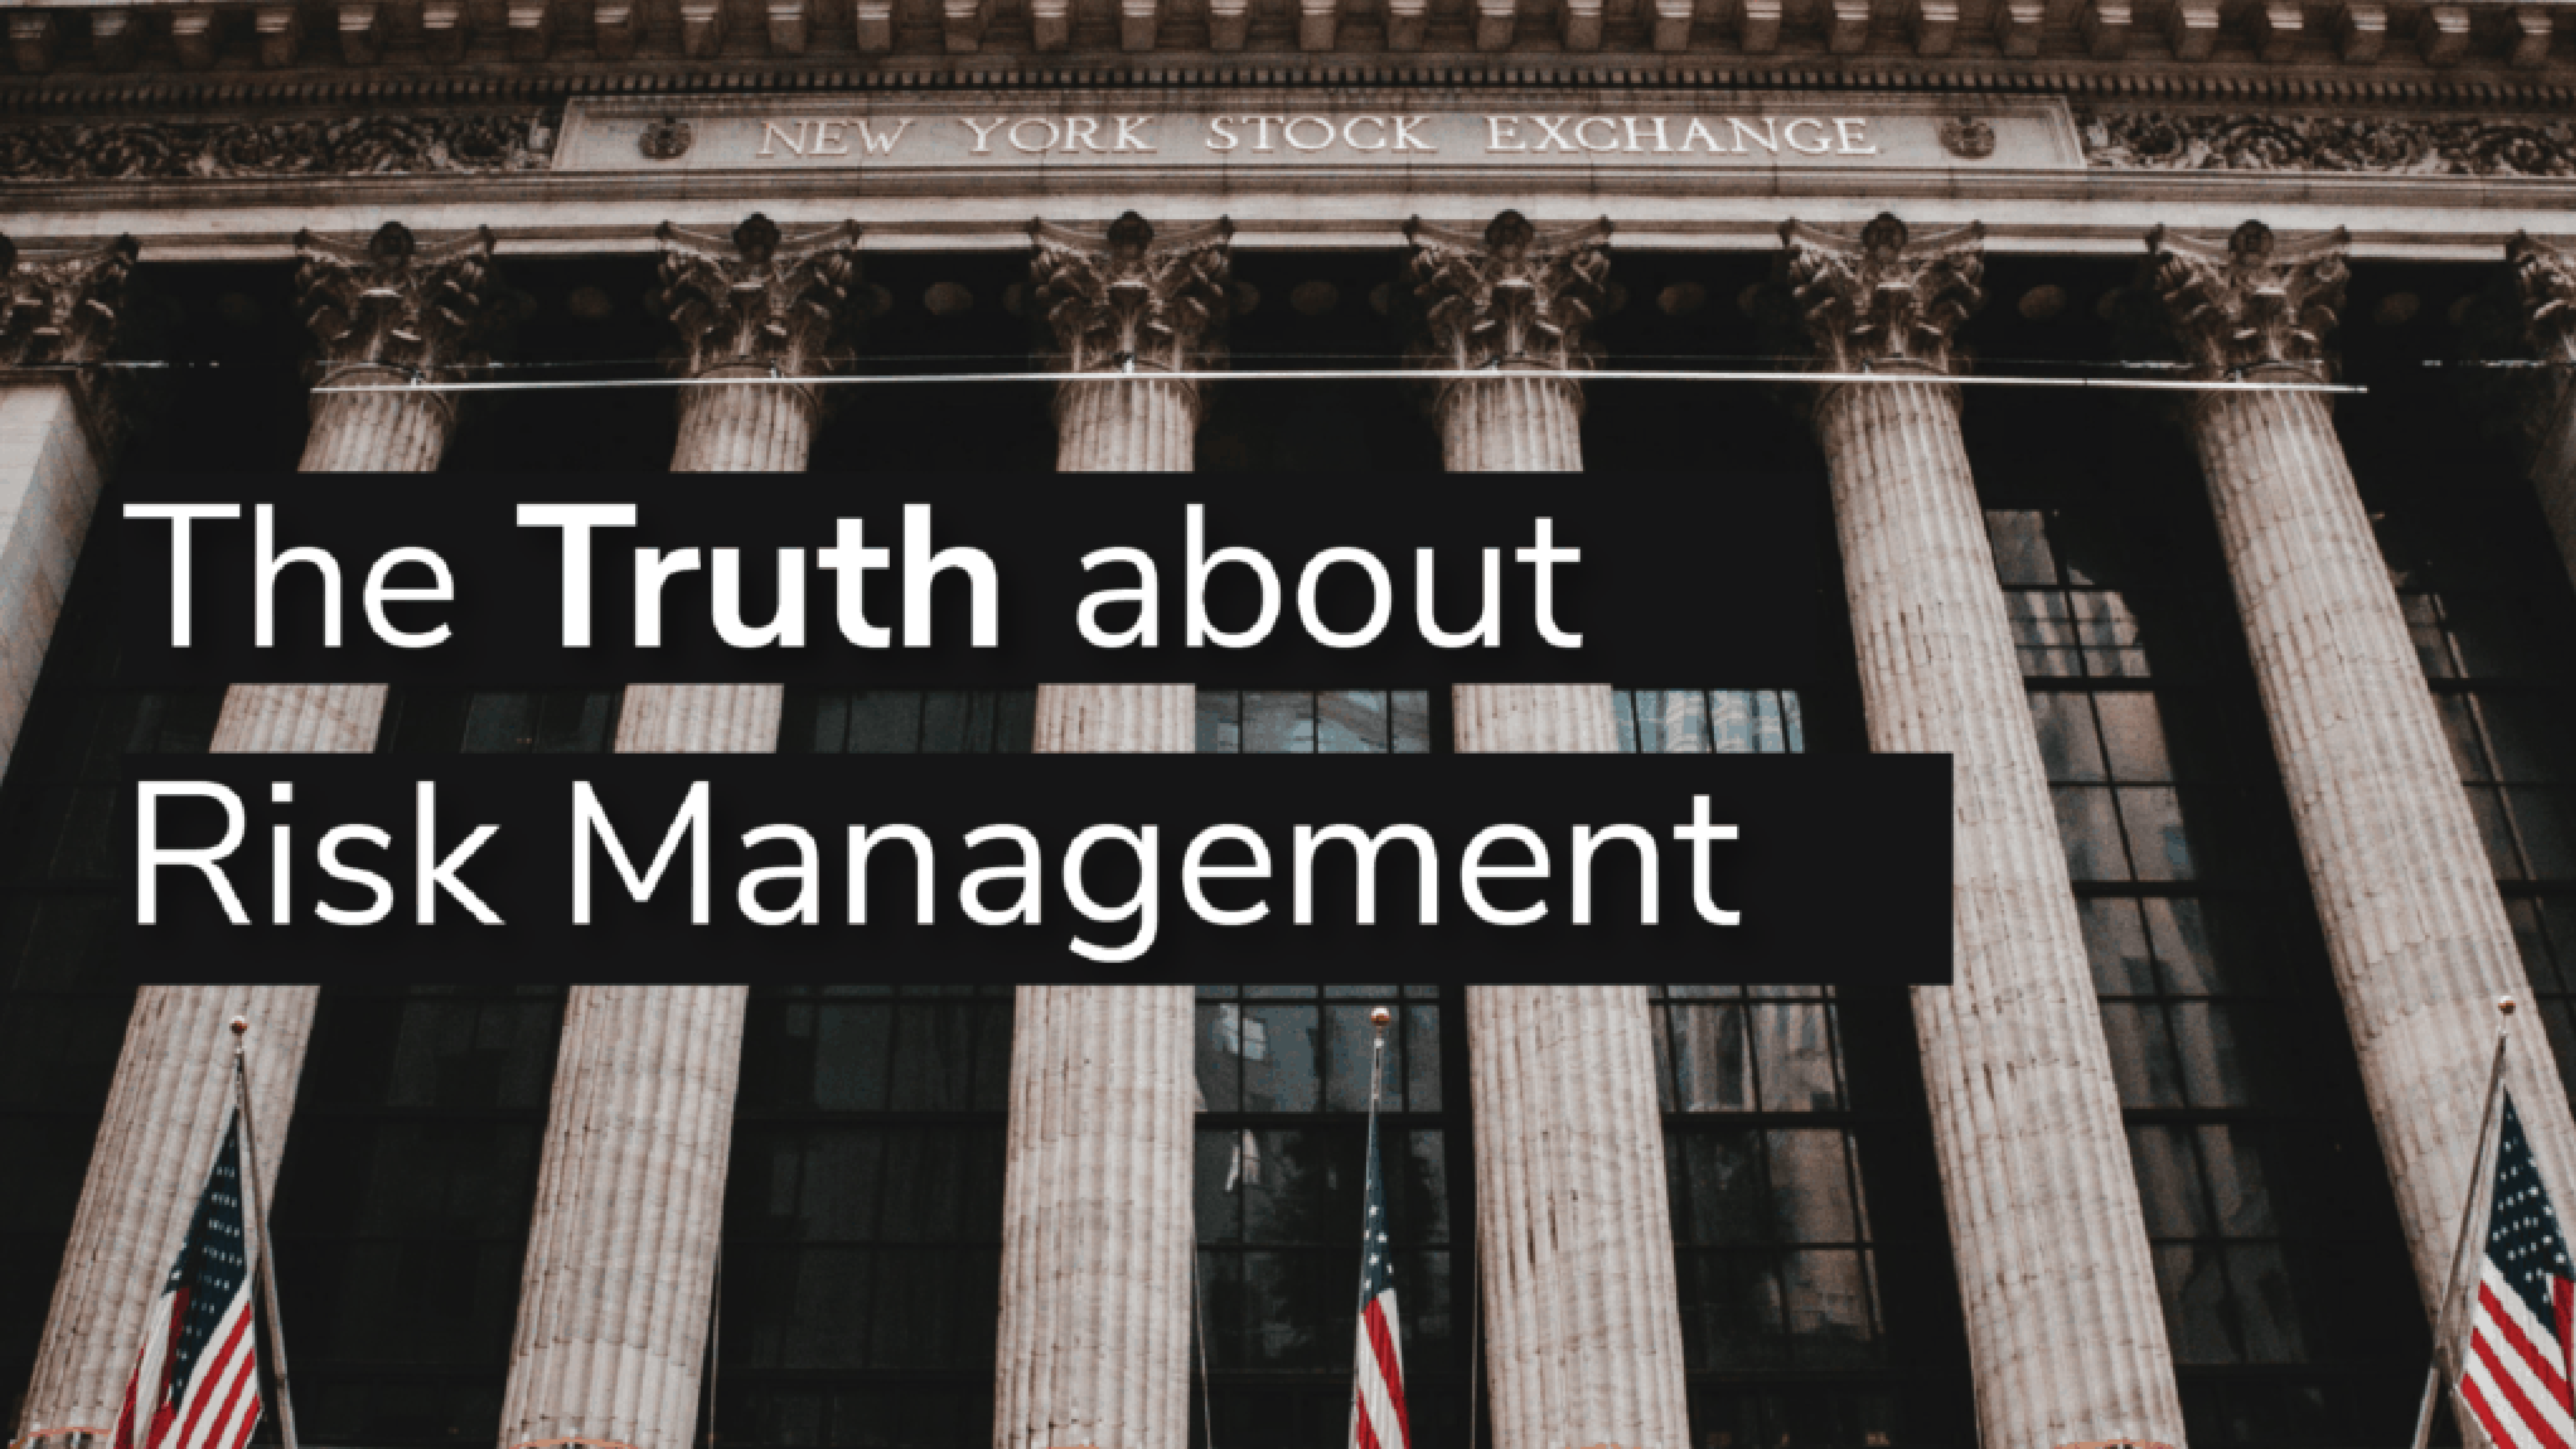 The Truth about Risk Management